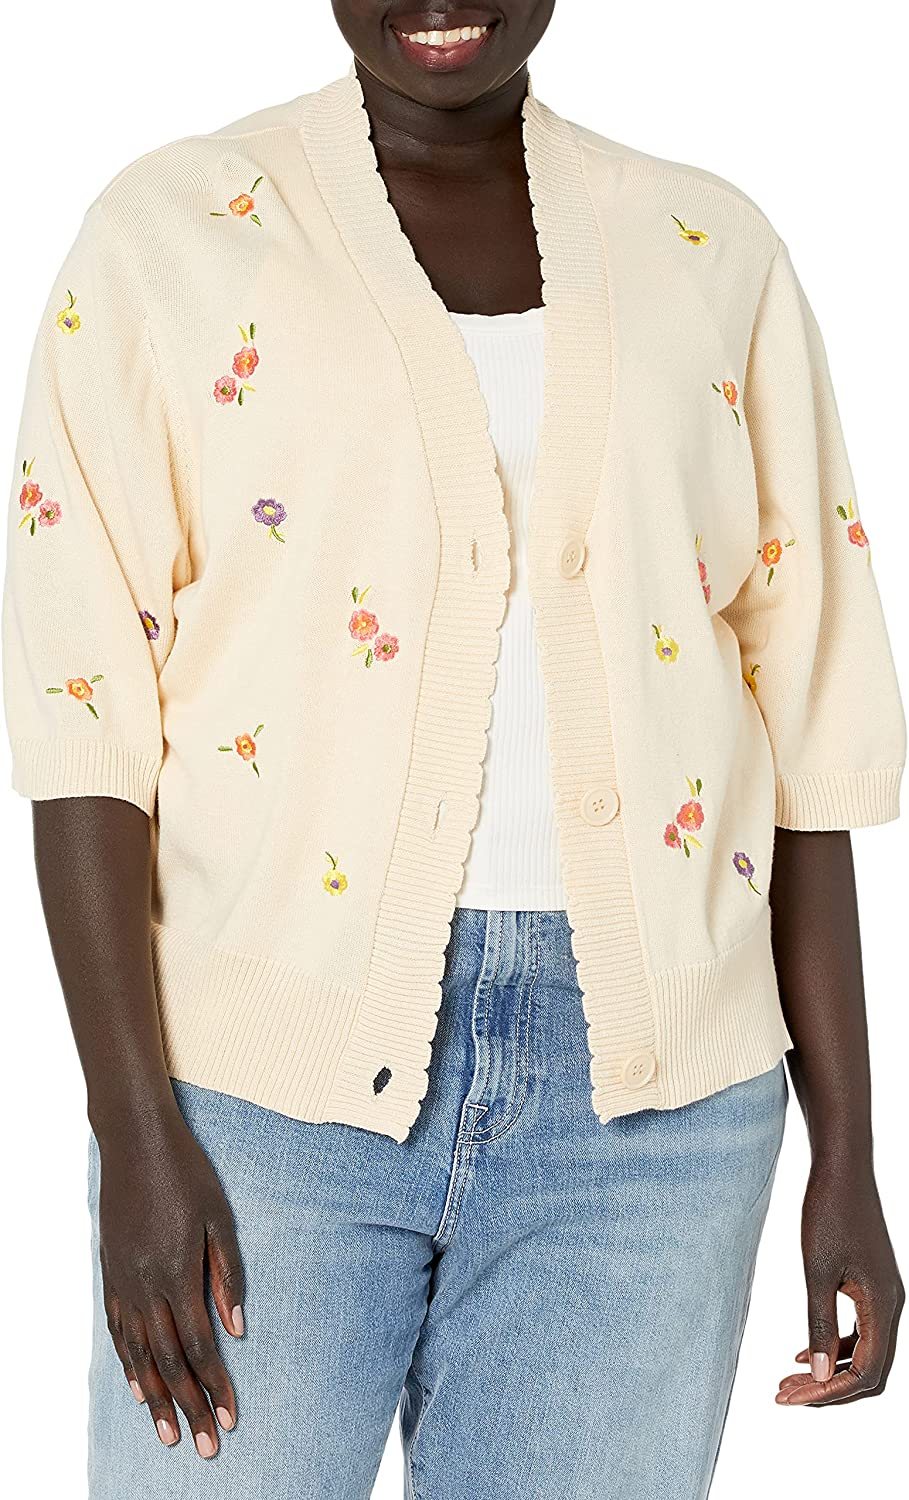 KENDALL + KYLIE Women's Mini Floral Embroidered Cardigan